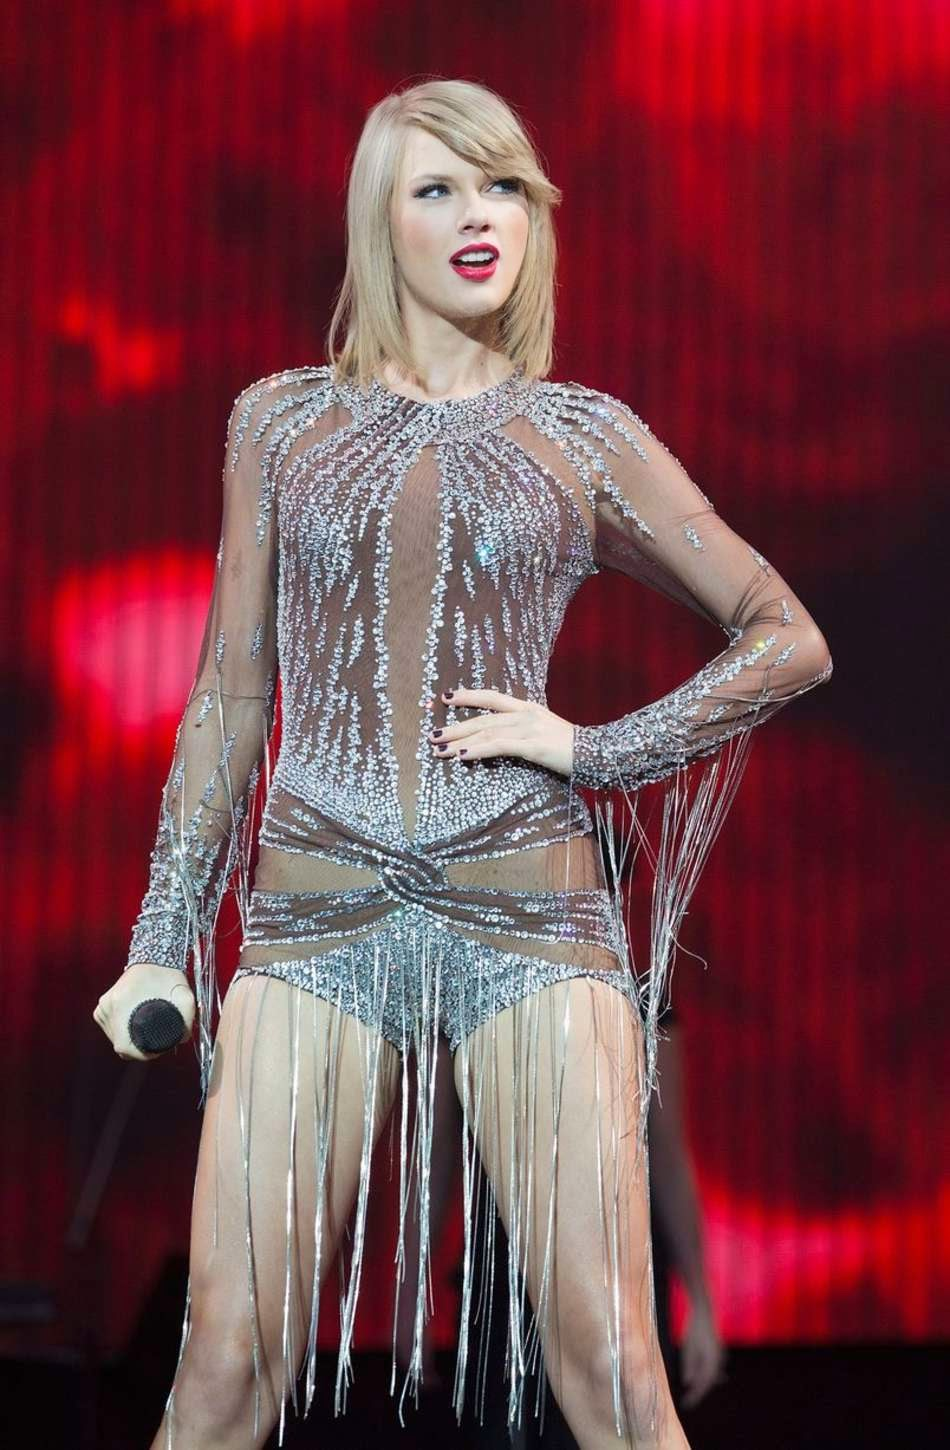 Taylor Swift performs in a sheer bodysuit at BBC's Radio 1 Big Weekend in London